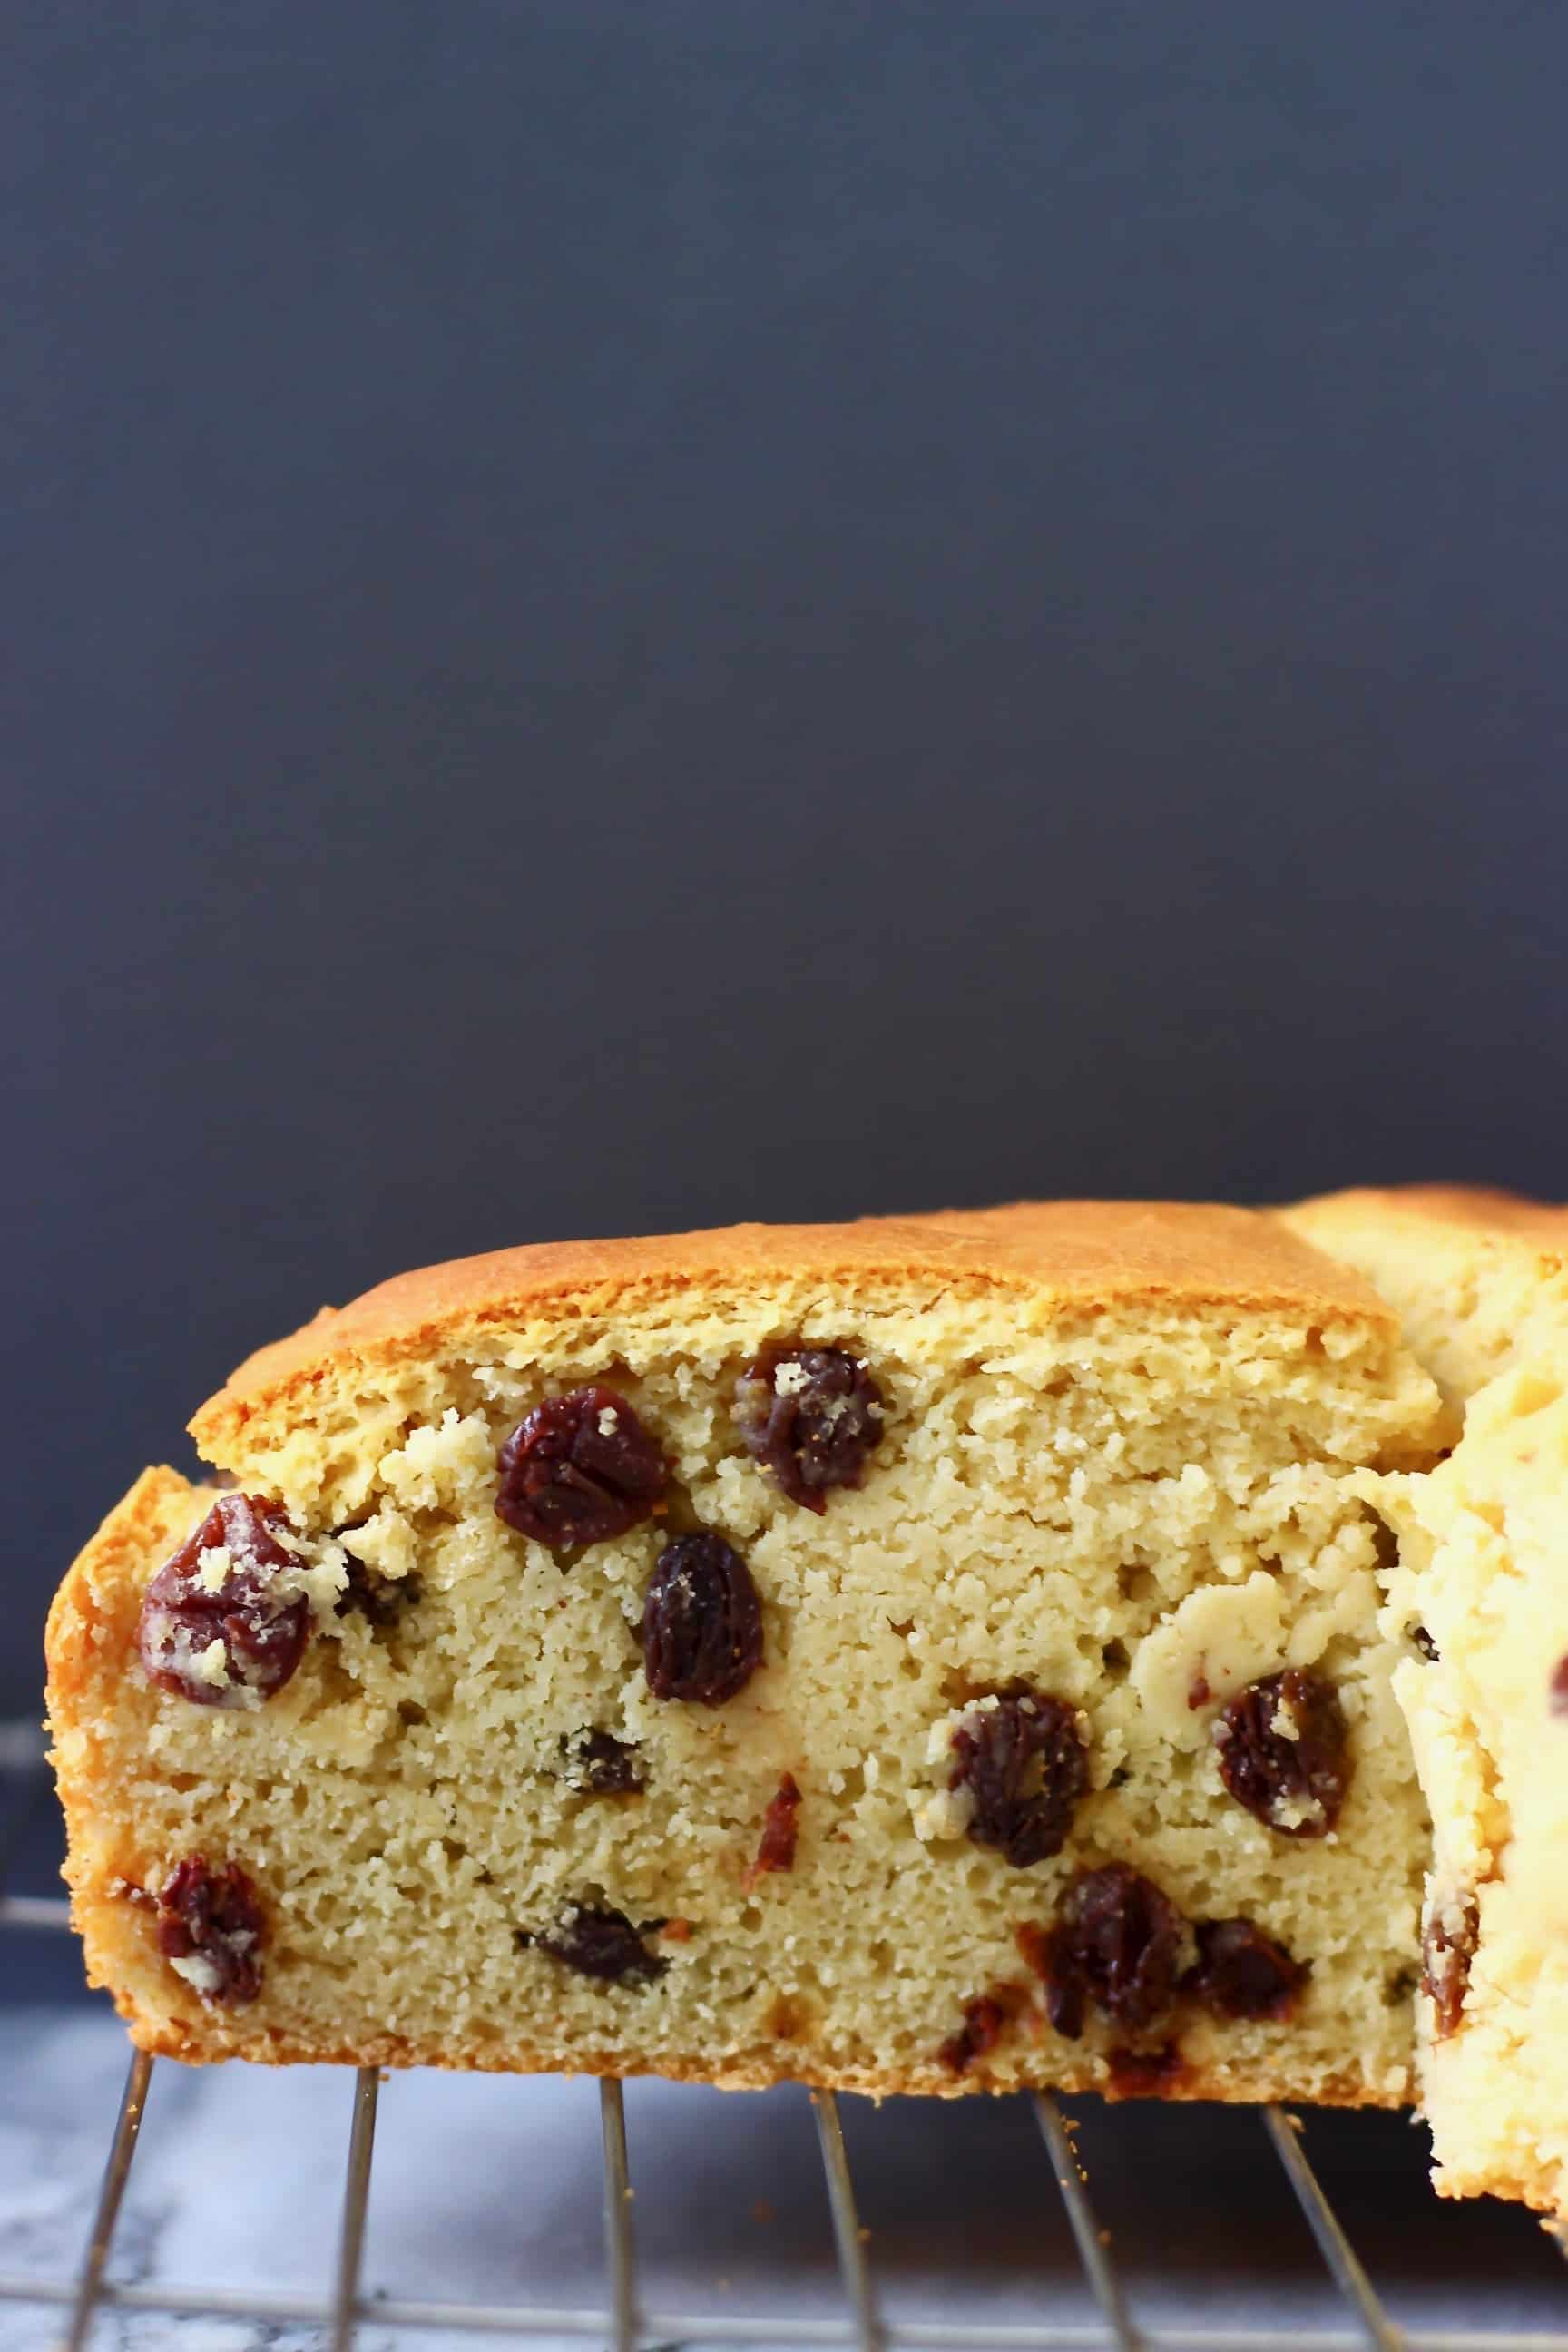 A loaf of bread filled with raisins on a wire rack against a dark grey background